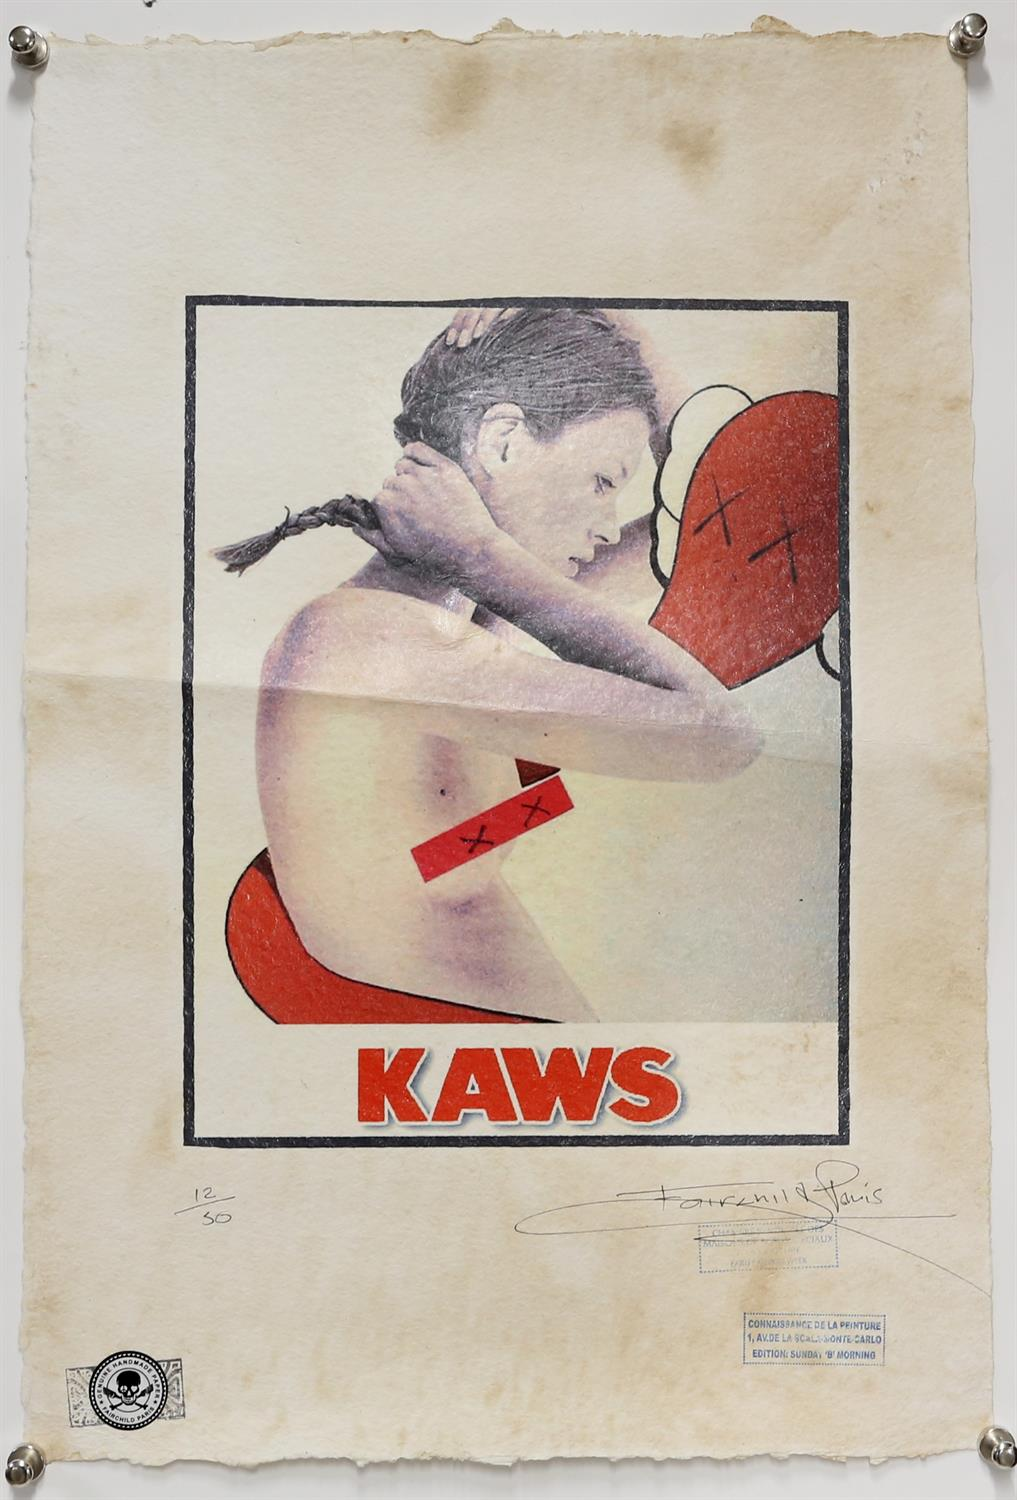 Kaws and Fairchild Paris, limited-edition print featuring Kate Moss. Lithograph on handmade paper.